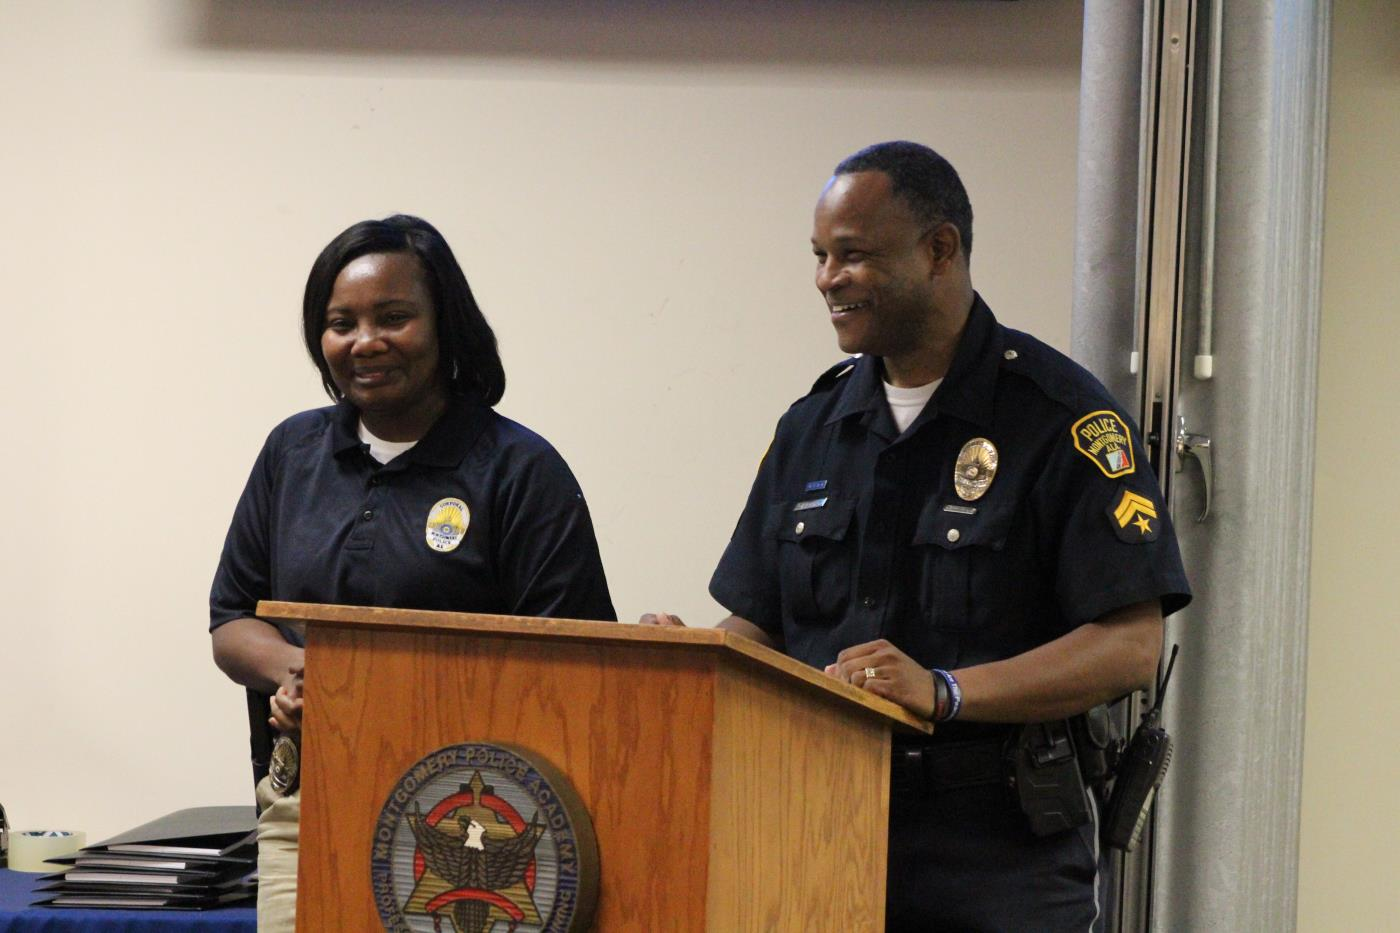 Citizens Police Academy 5